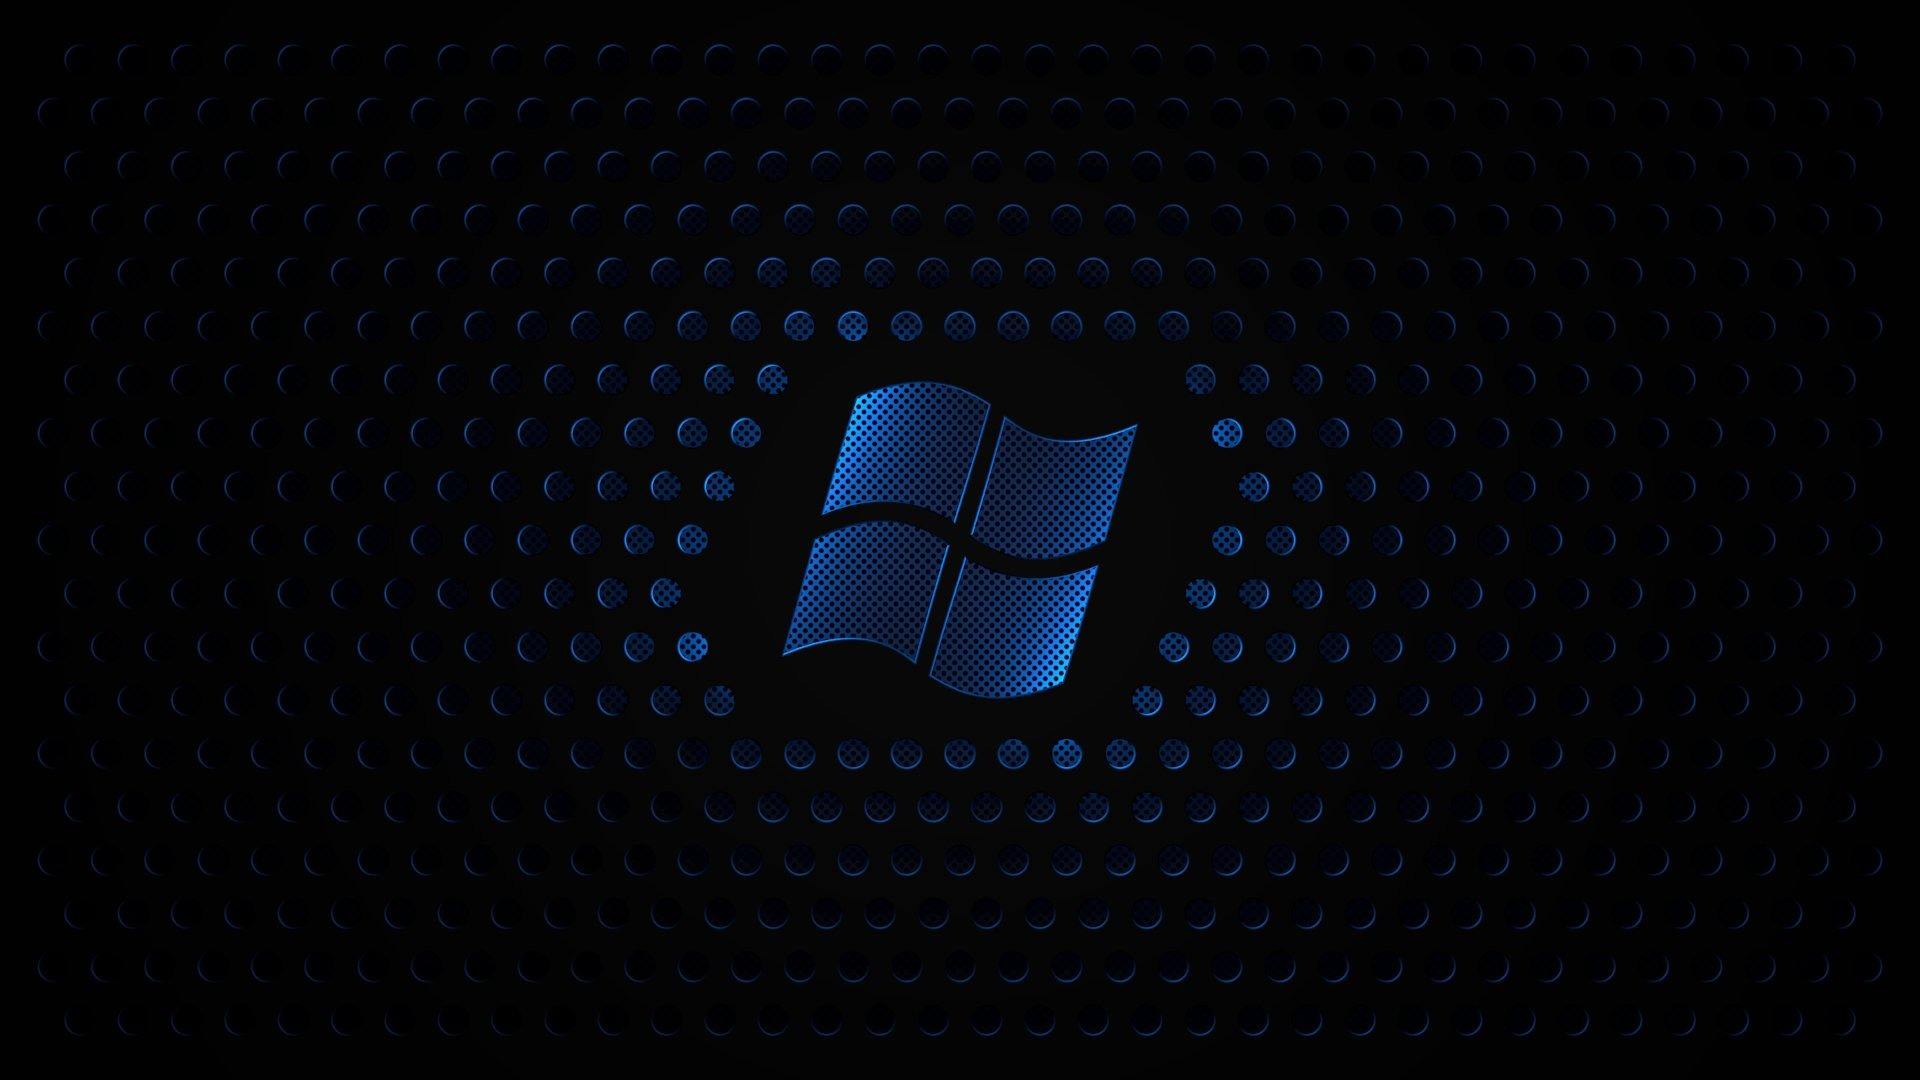 Hd Wallpaper 1920x1080 Black Blue